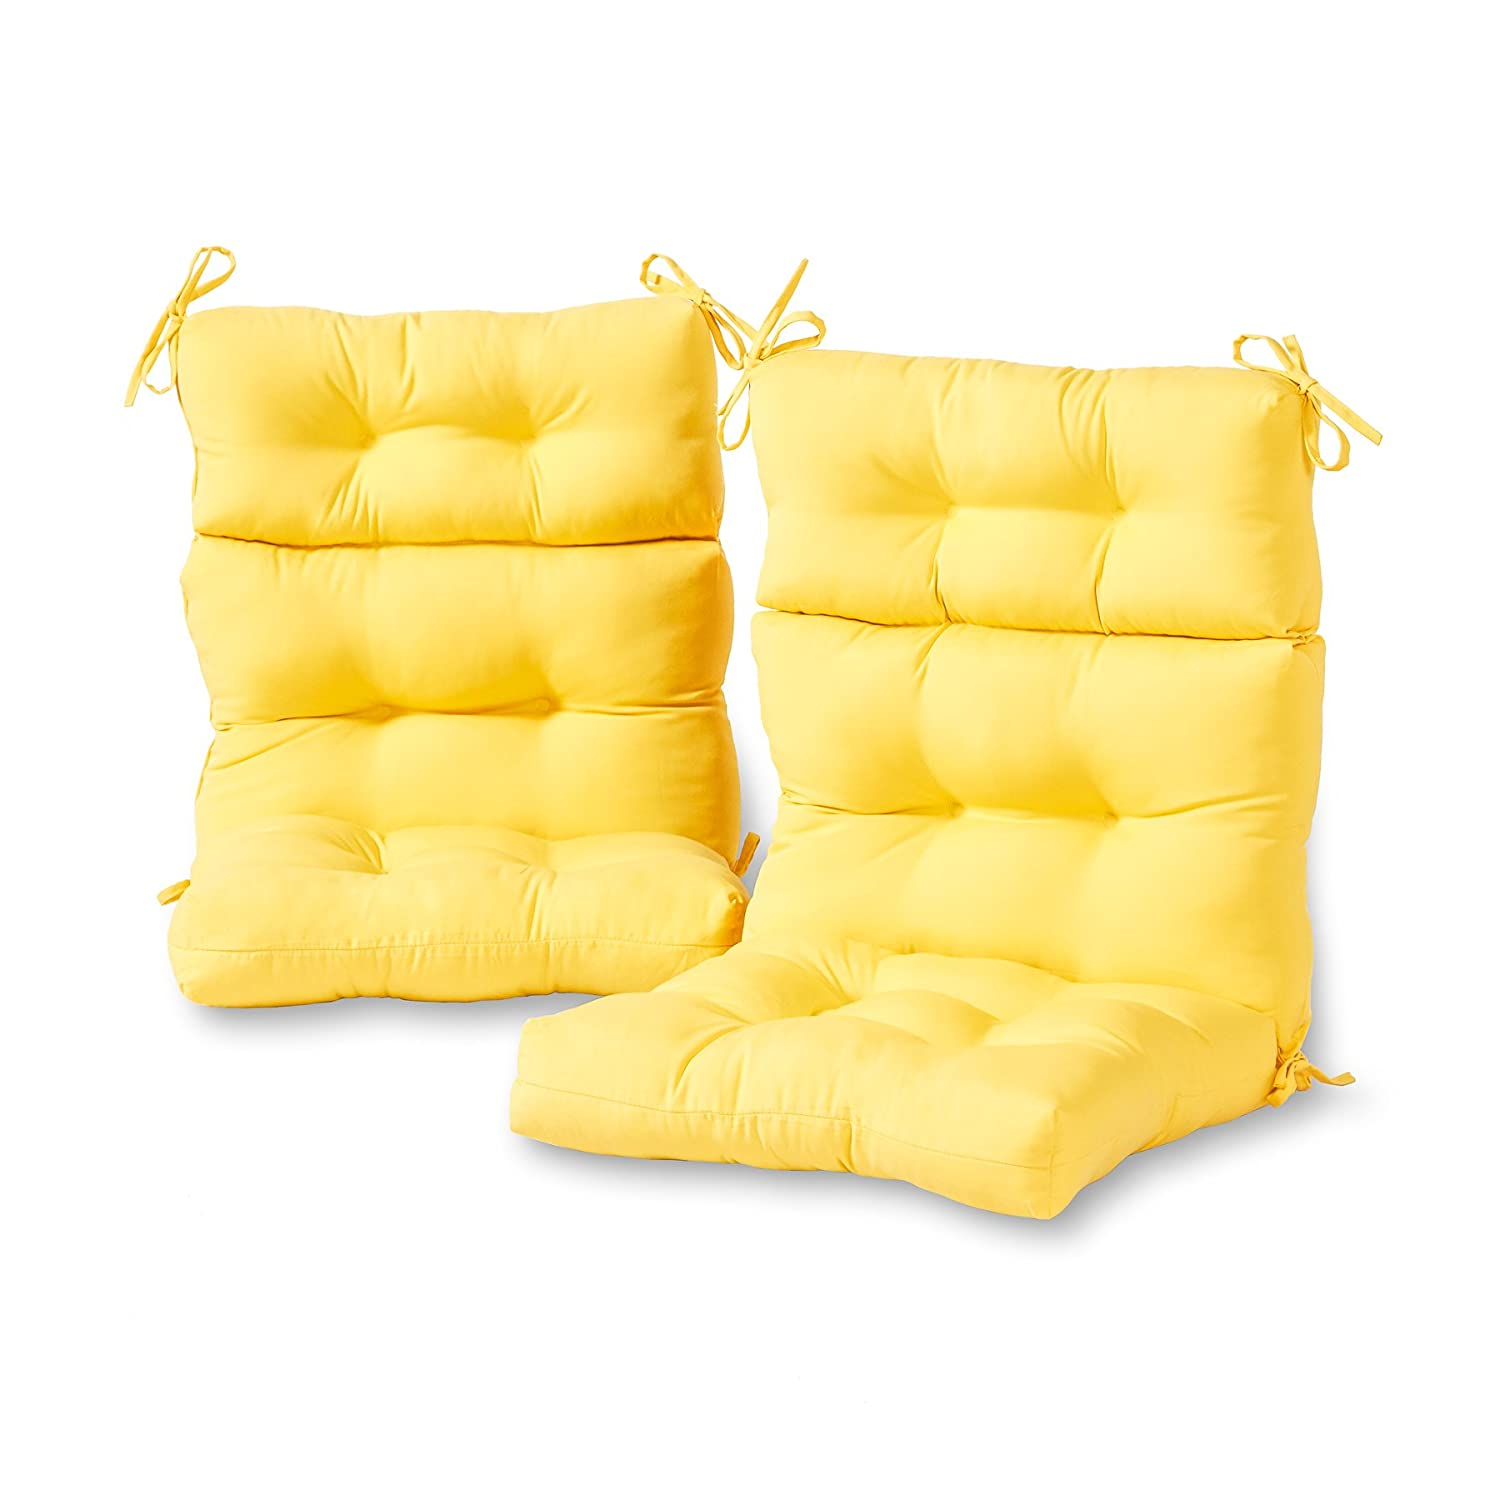 Sofa Cushions Walmart Images IKEA Couch Covers In